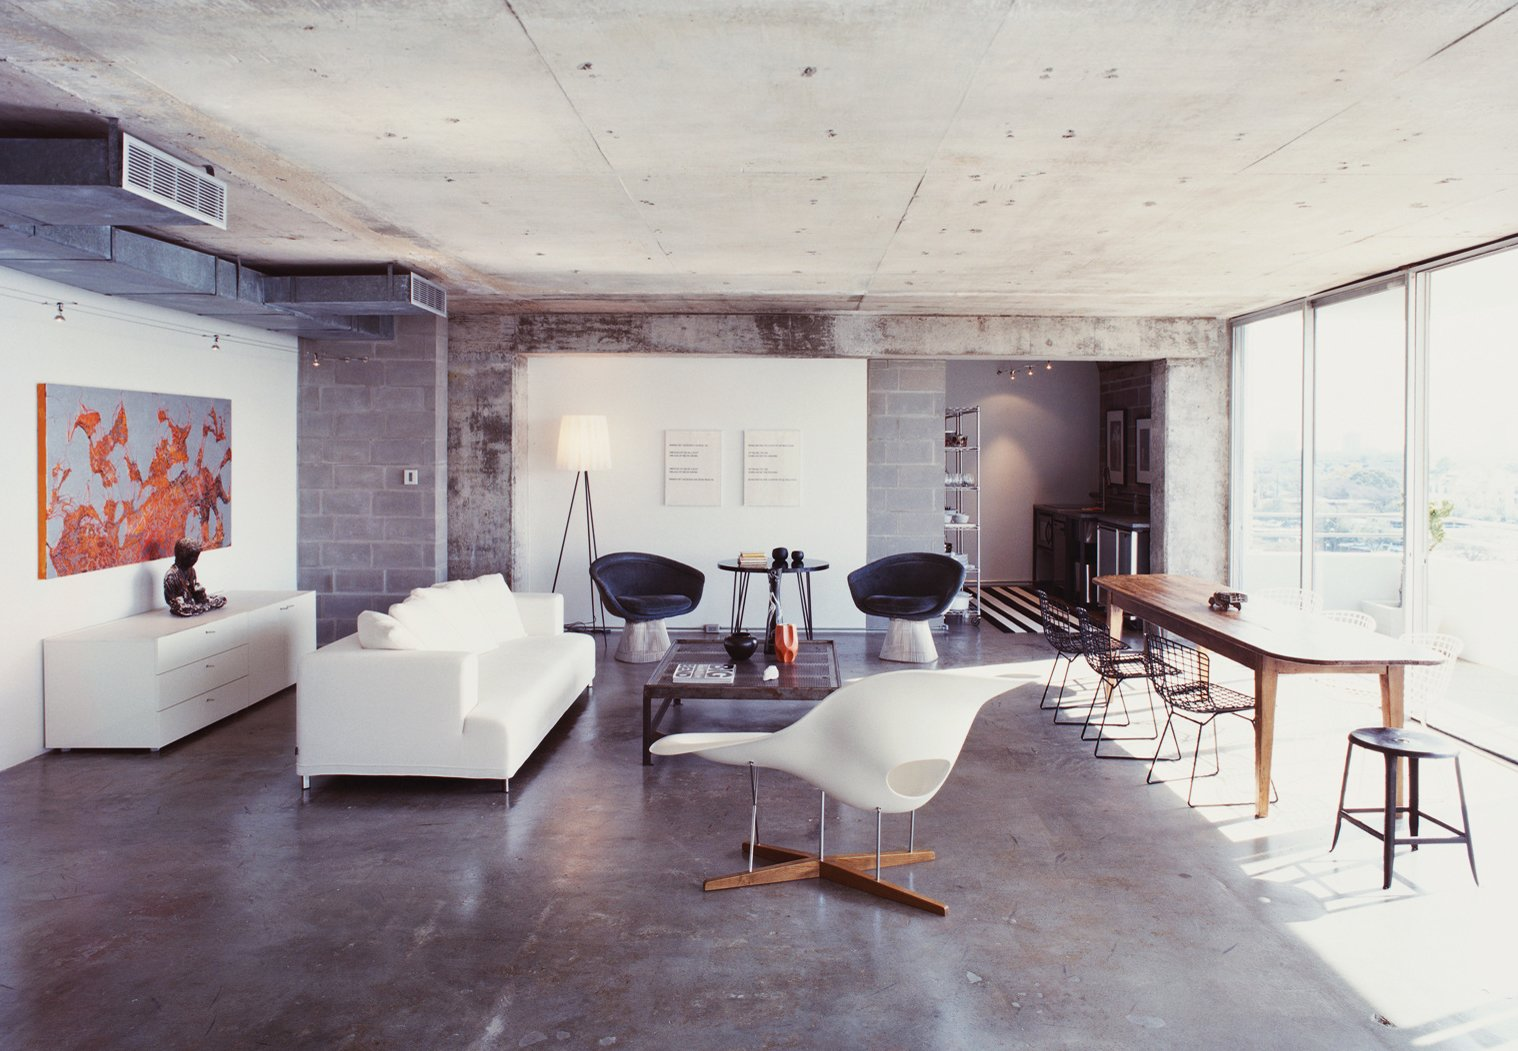 "When Barbara Hill purchased a 1960s Houston condo she completely stripped its interior, seeking a minimal restart. When the apartment was down to its original mottled concrete walls and floors Hill decided to keep everything exactly the way it was. ""Once I saw the exposed space, I couldn't bear to put anything back,"" she says.  Striking Exposed Concrete Interiors by William Harrison"